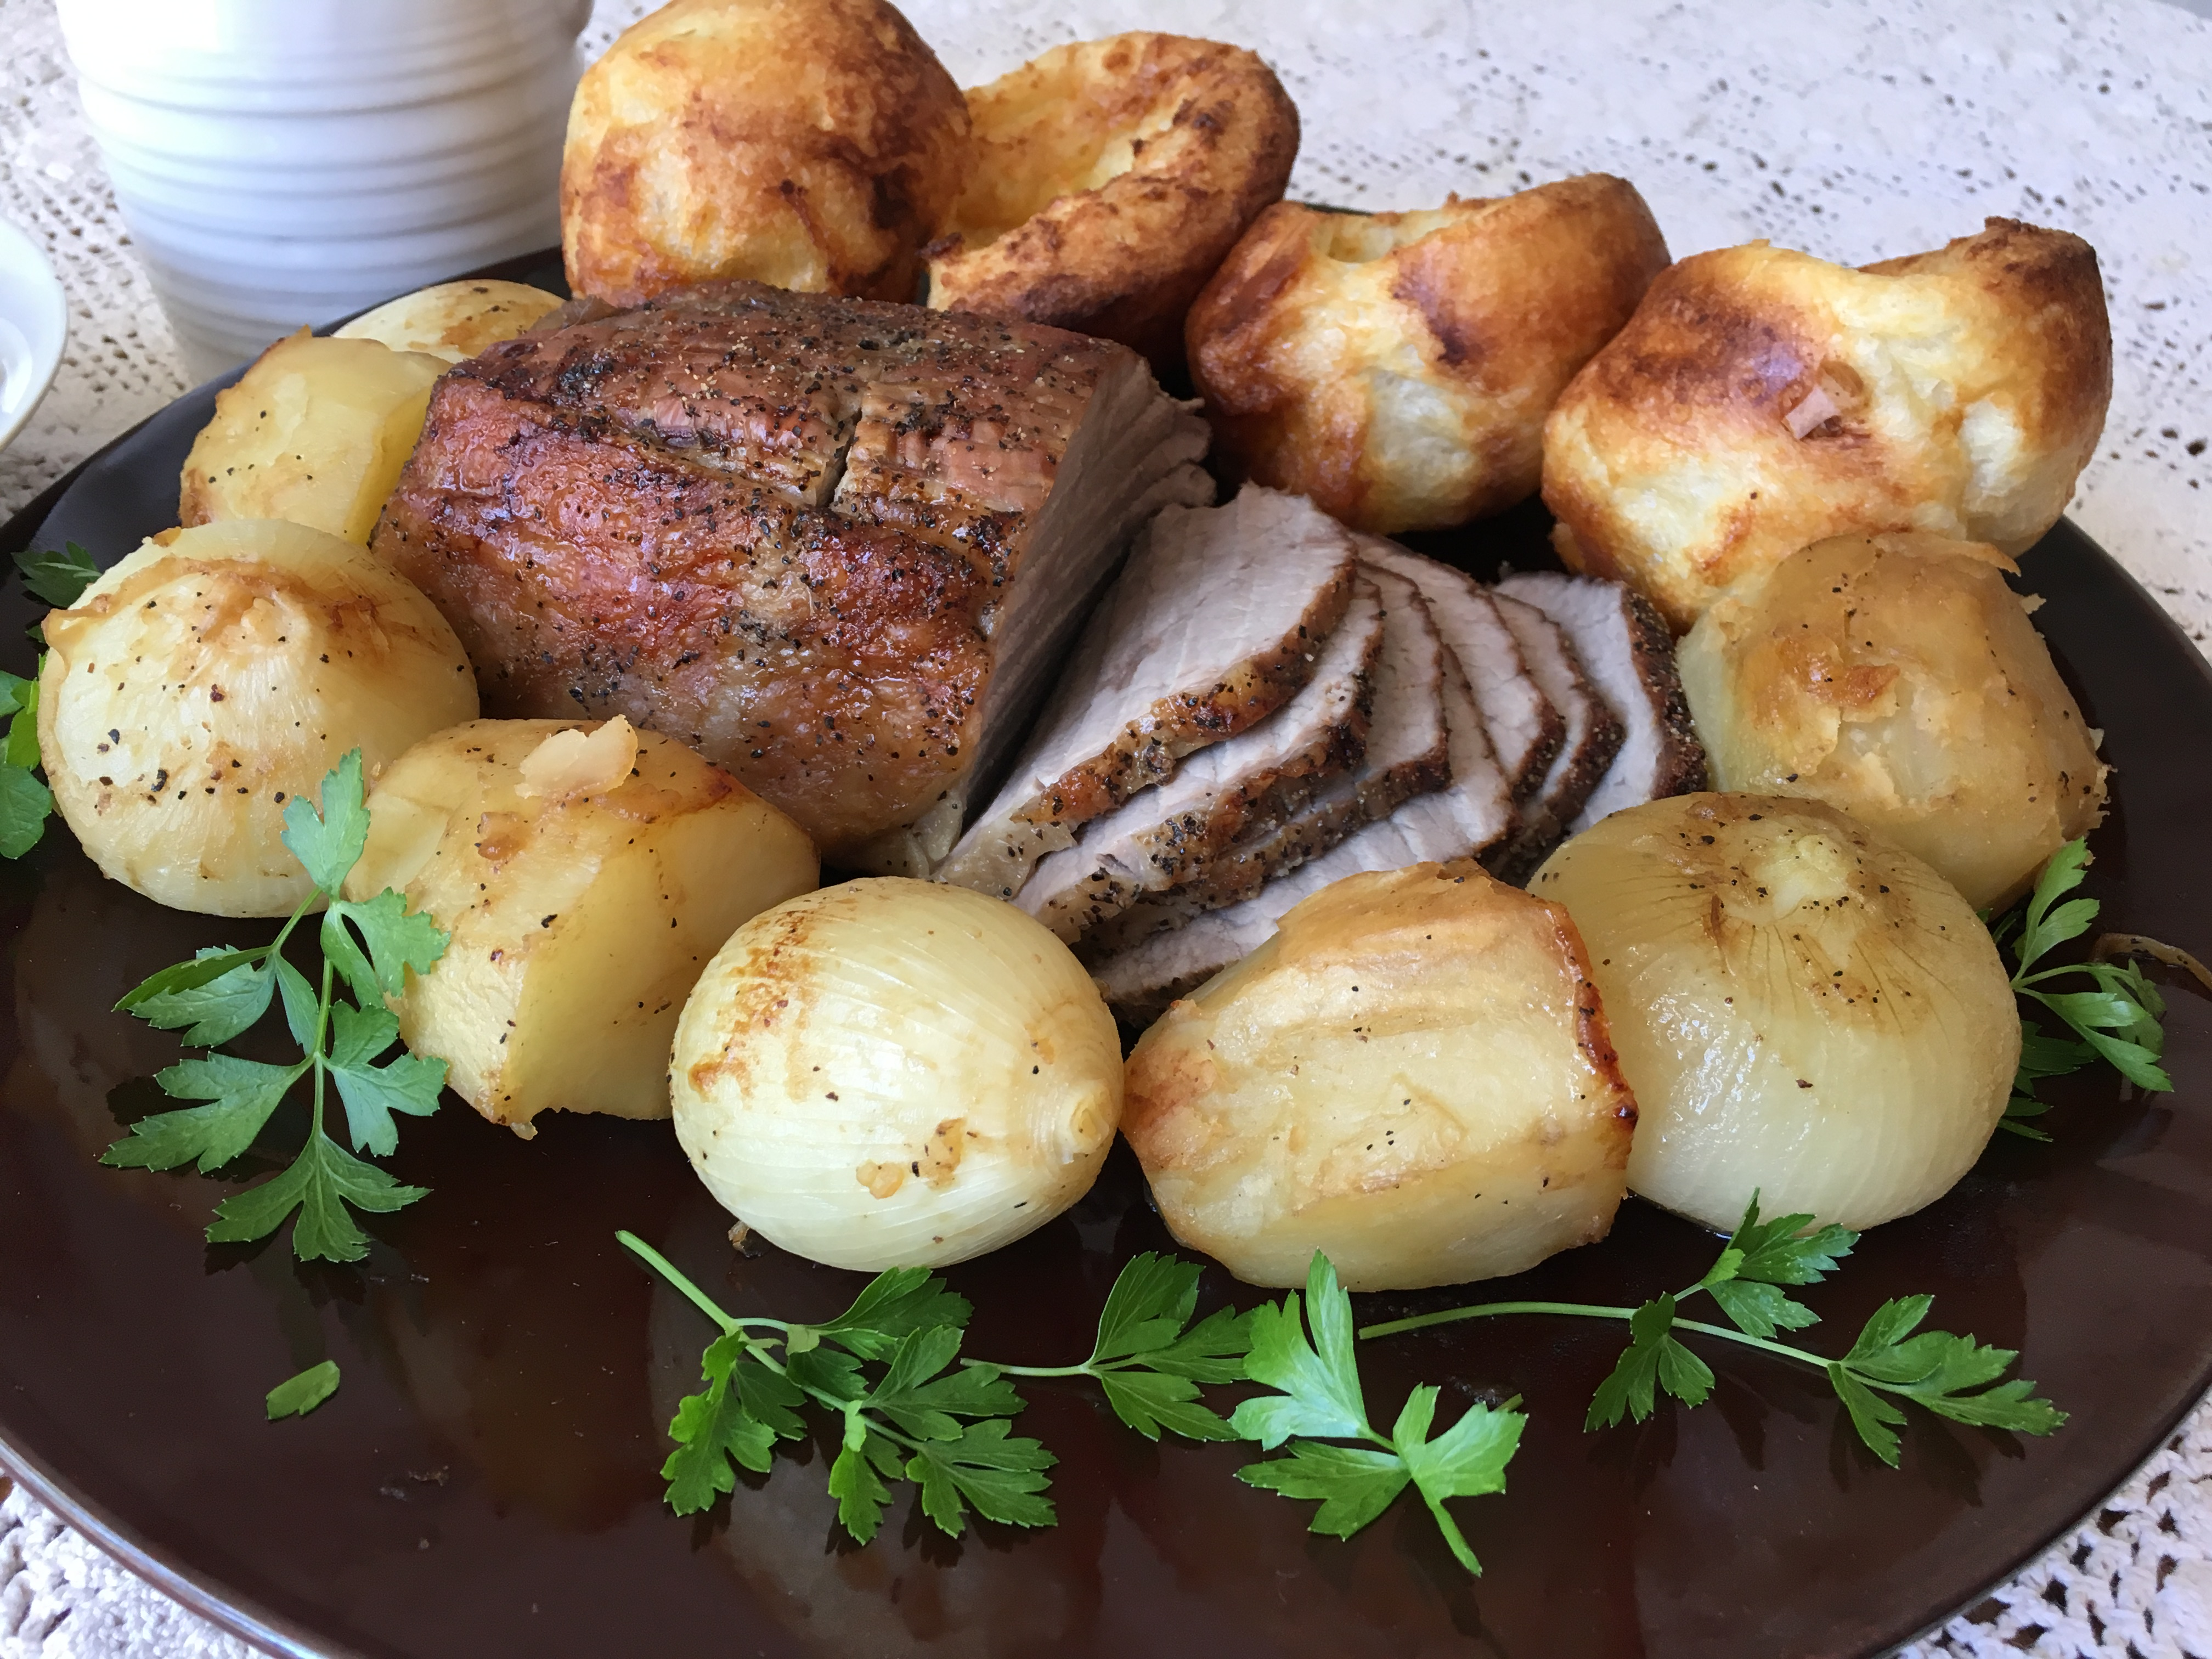 Roast Beef and Yorkshire Pudding